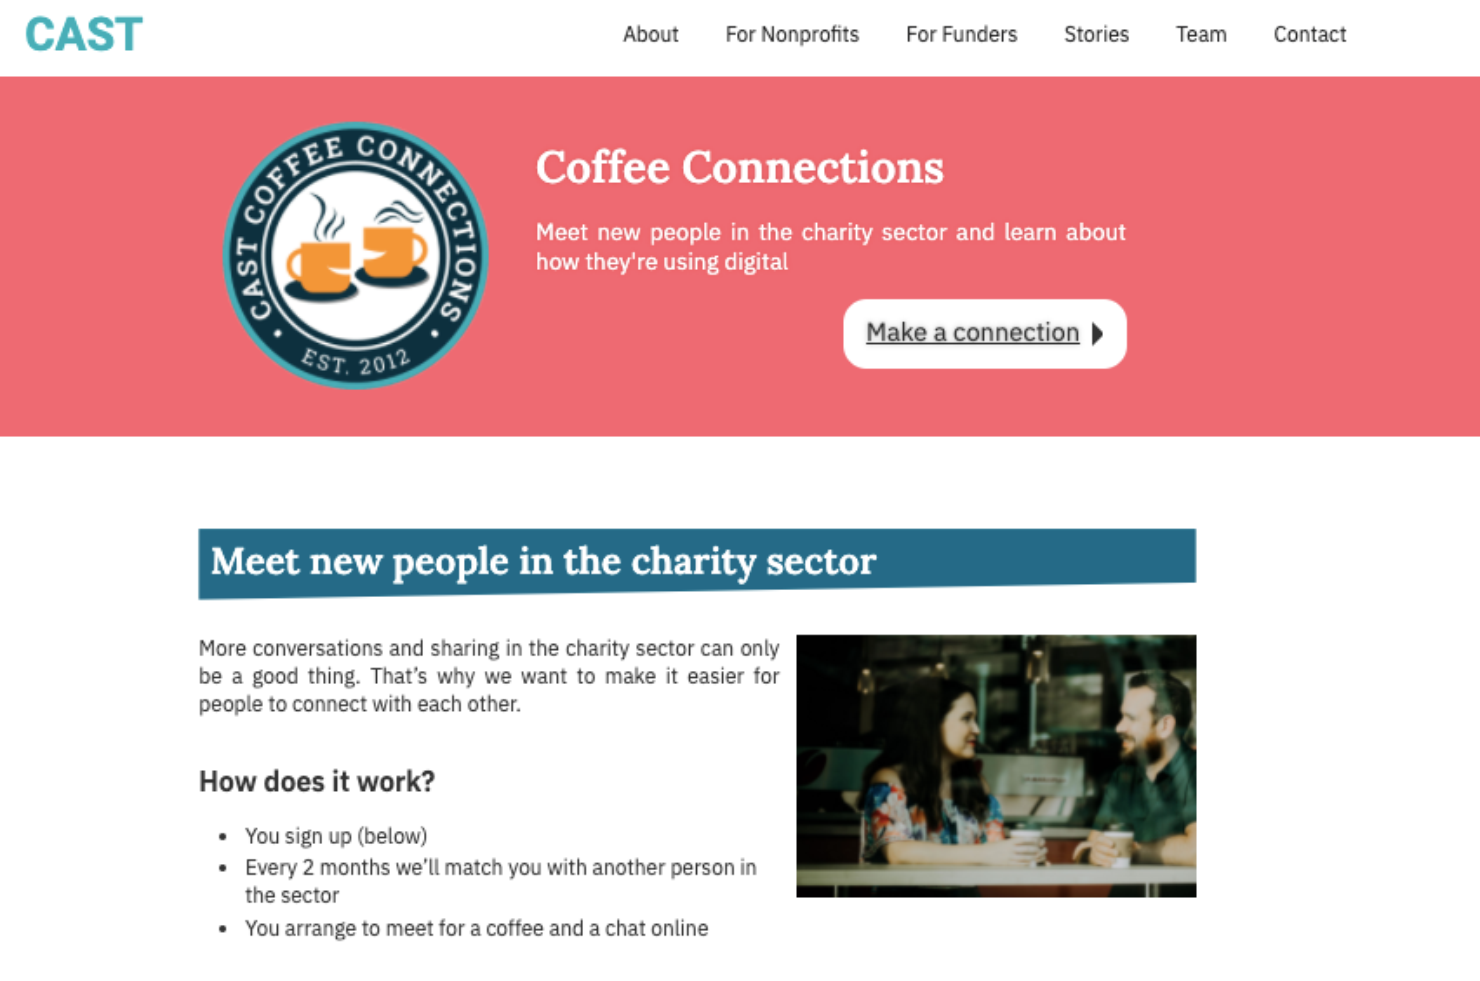 The Coffee Connections website